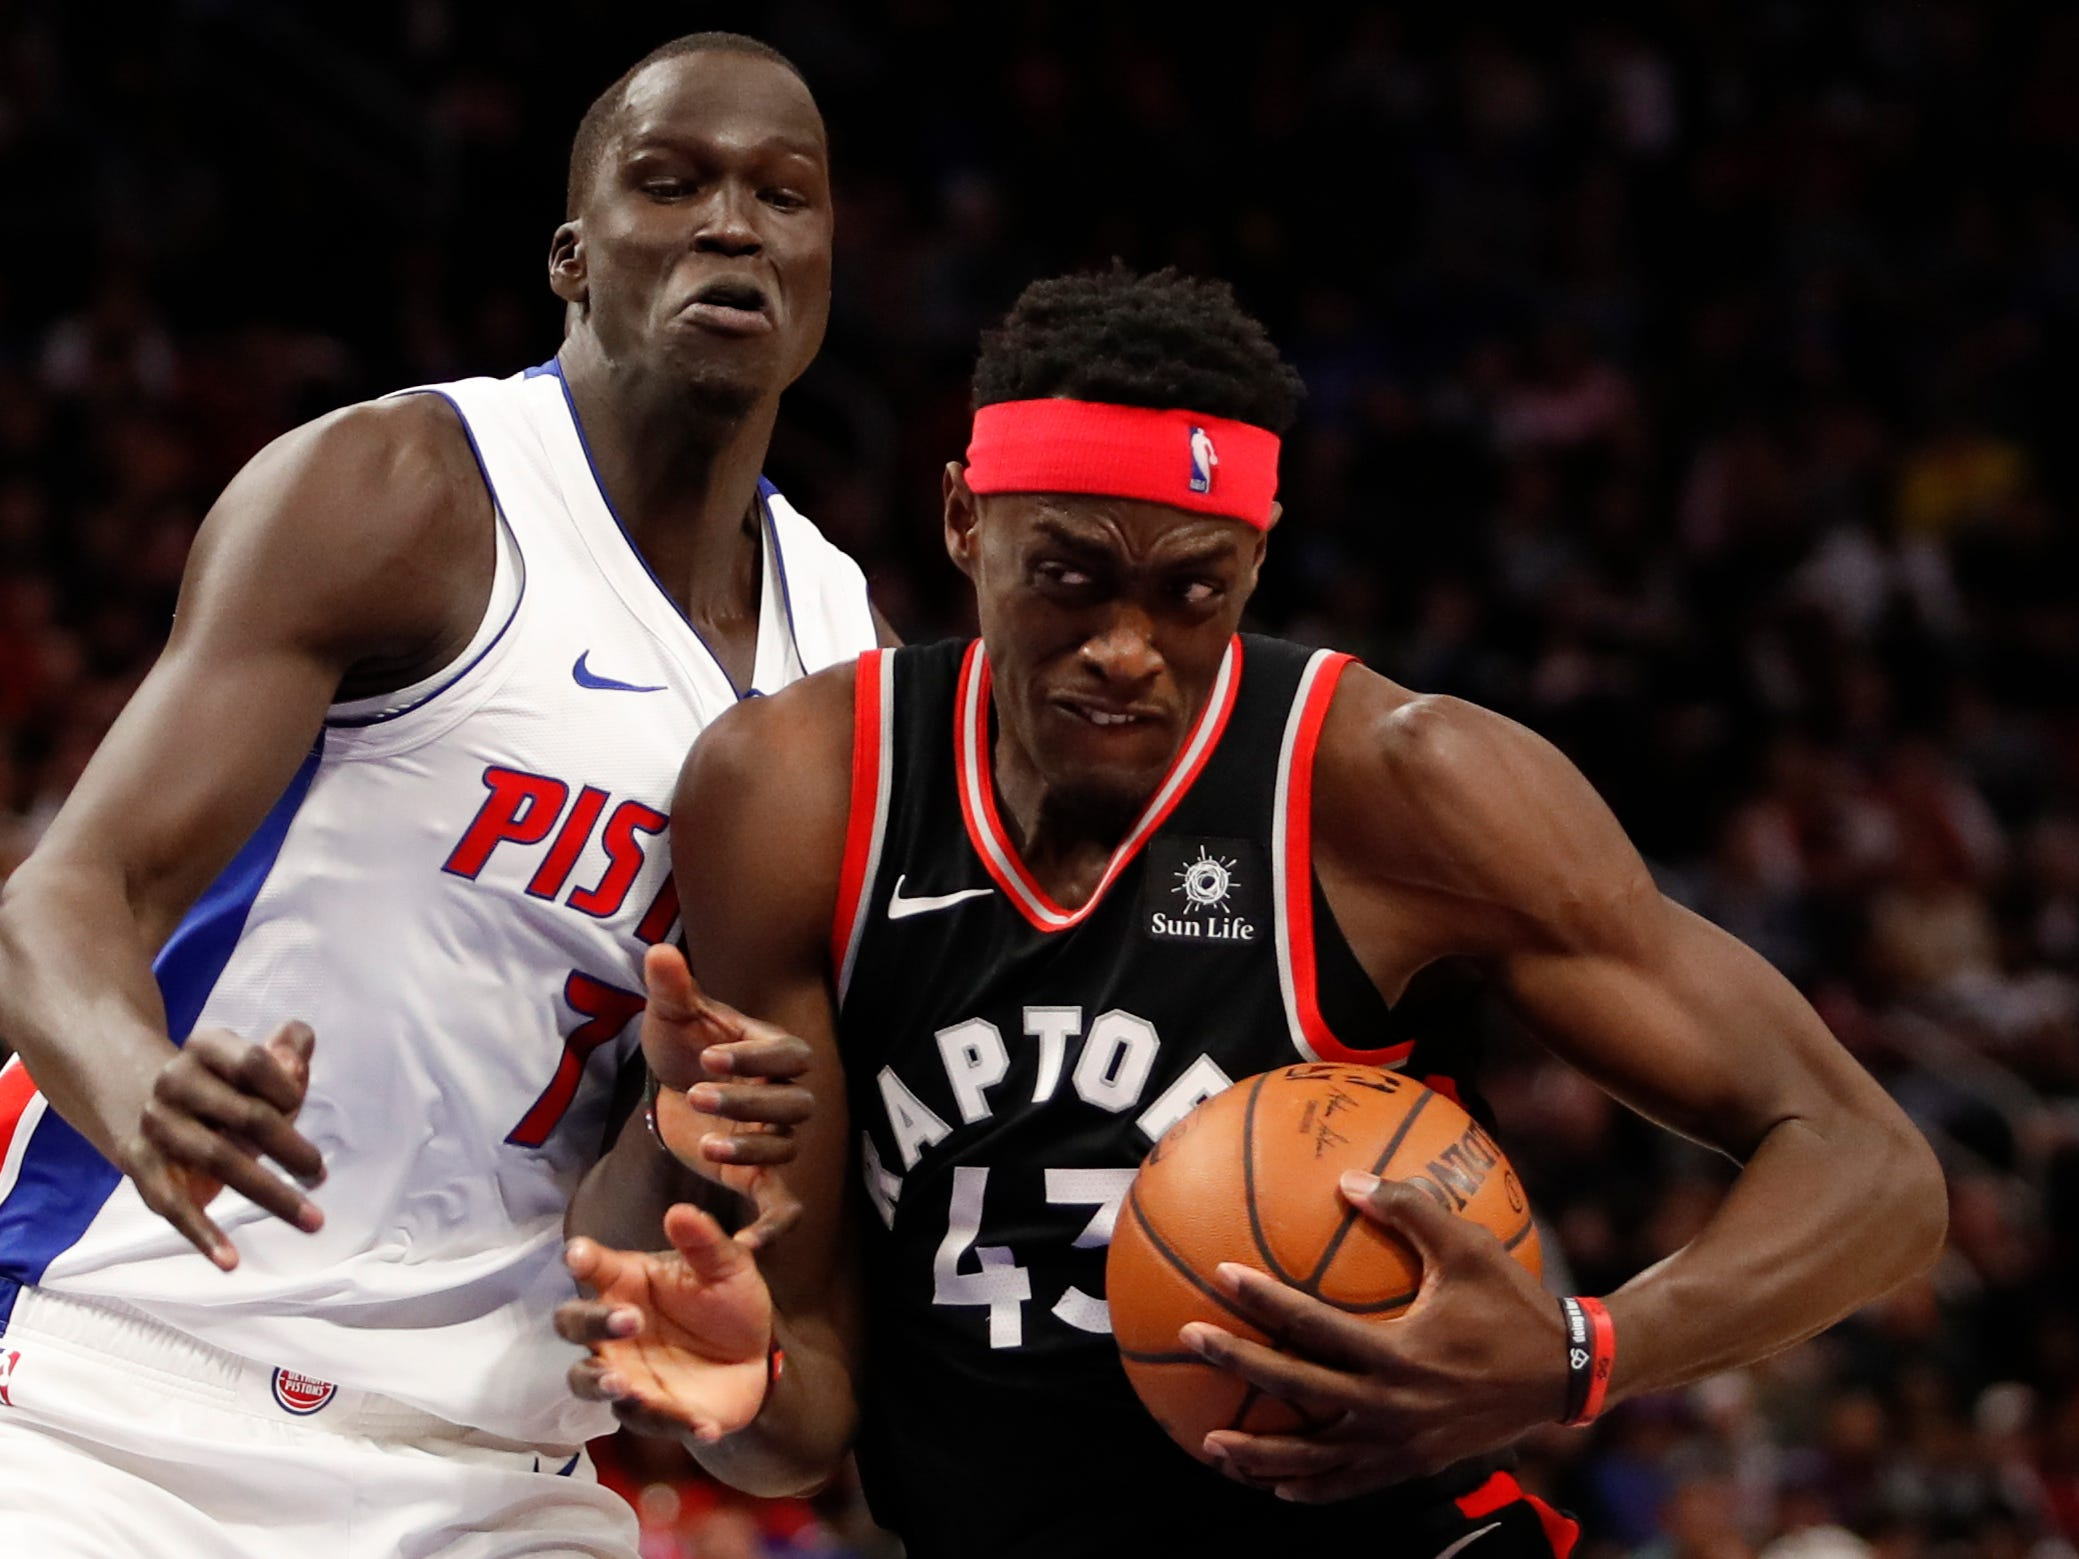 Toronto Raptors forward Pascal Siakam drives to the basket against Thon Maker during the third quarter of the Detroit Pistons' 110-107 win at Little Caesars Arena, Sunday, March 17, 2019.